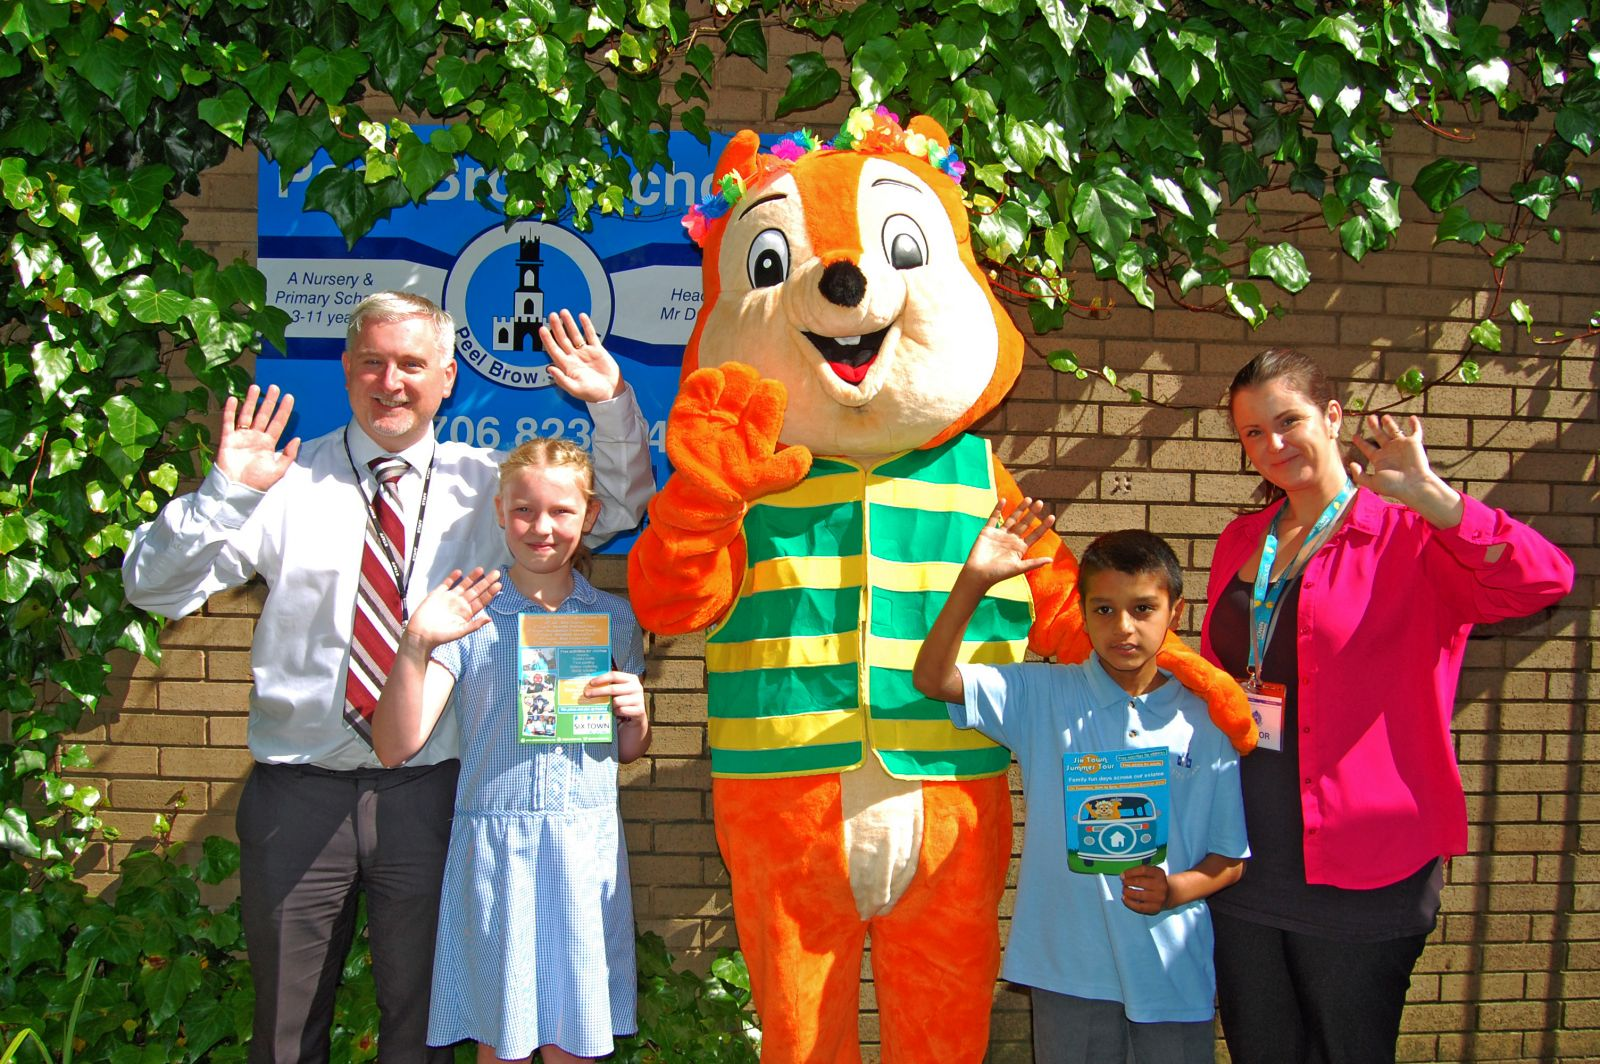 Cyril at Peel Brow Primary School with Headteacher Danny Mellor, Emily Cunliffe (Year 5 Age 10), Tahir Mahmood (Year 4, Age 9) and Six Town Housing Community Development Worker Ashleigh Hogan on July 4th 2016.